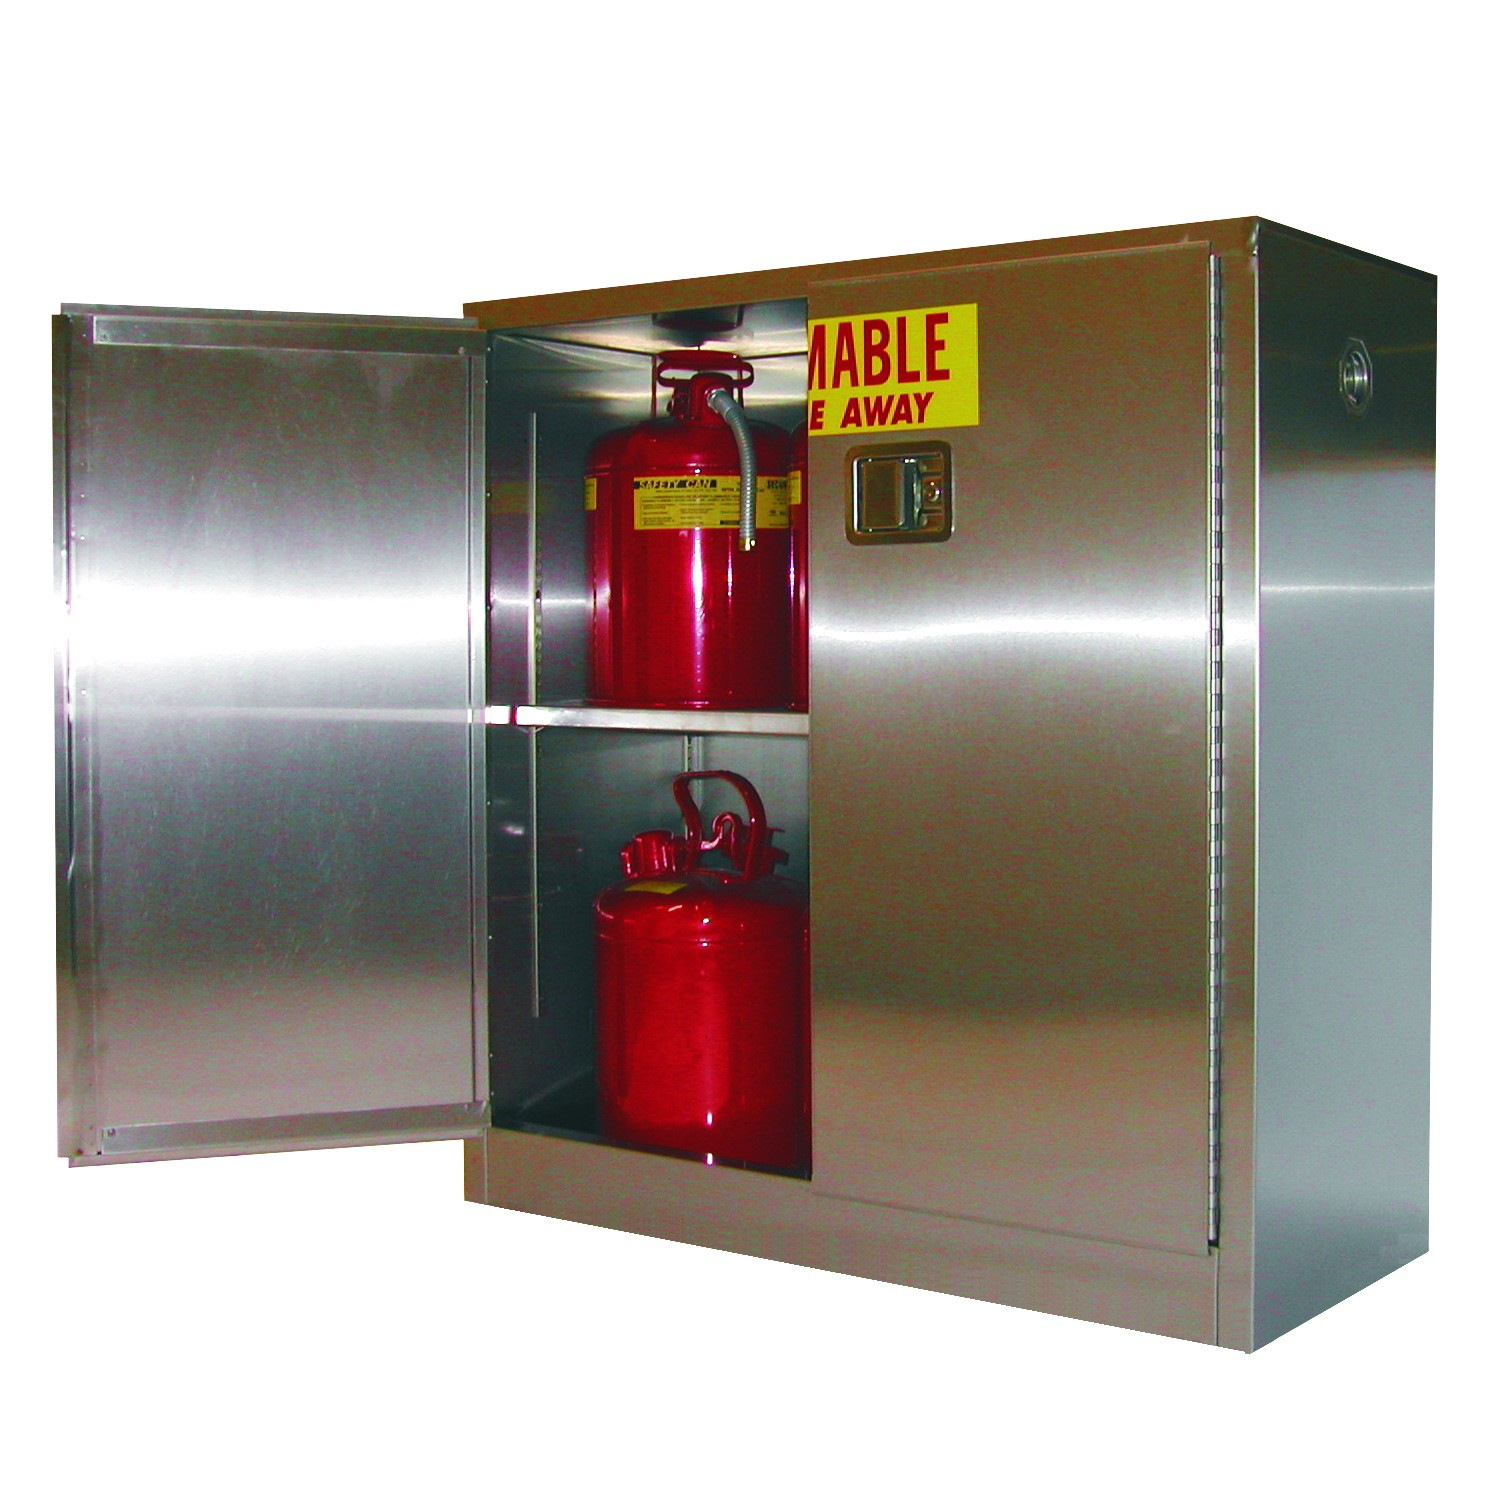 A130-SS - Stainless Steel Flammable Storage Cabinet - 30 Gal. Storage Capacity